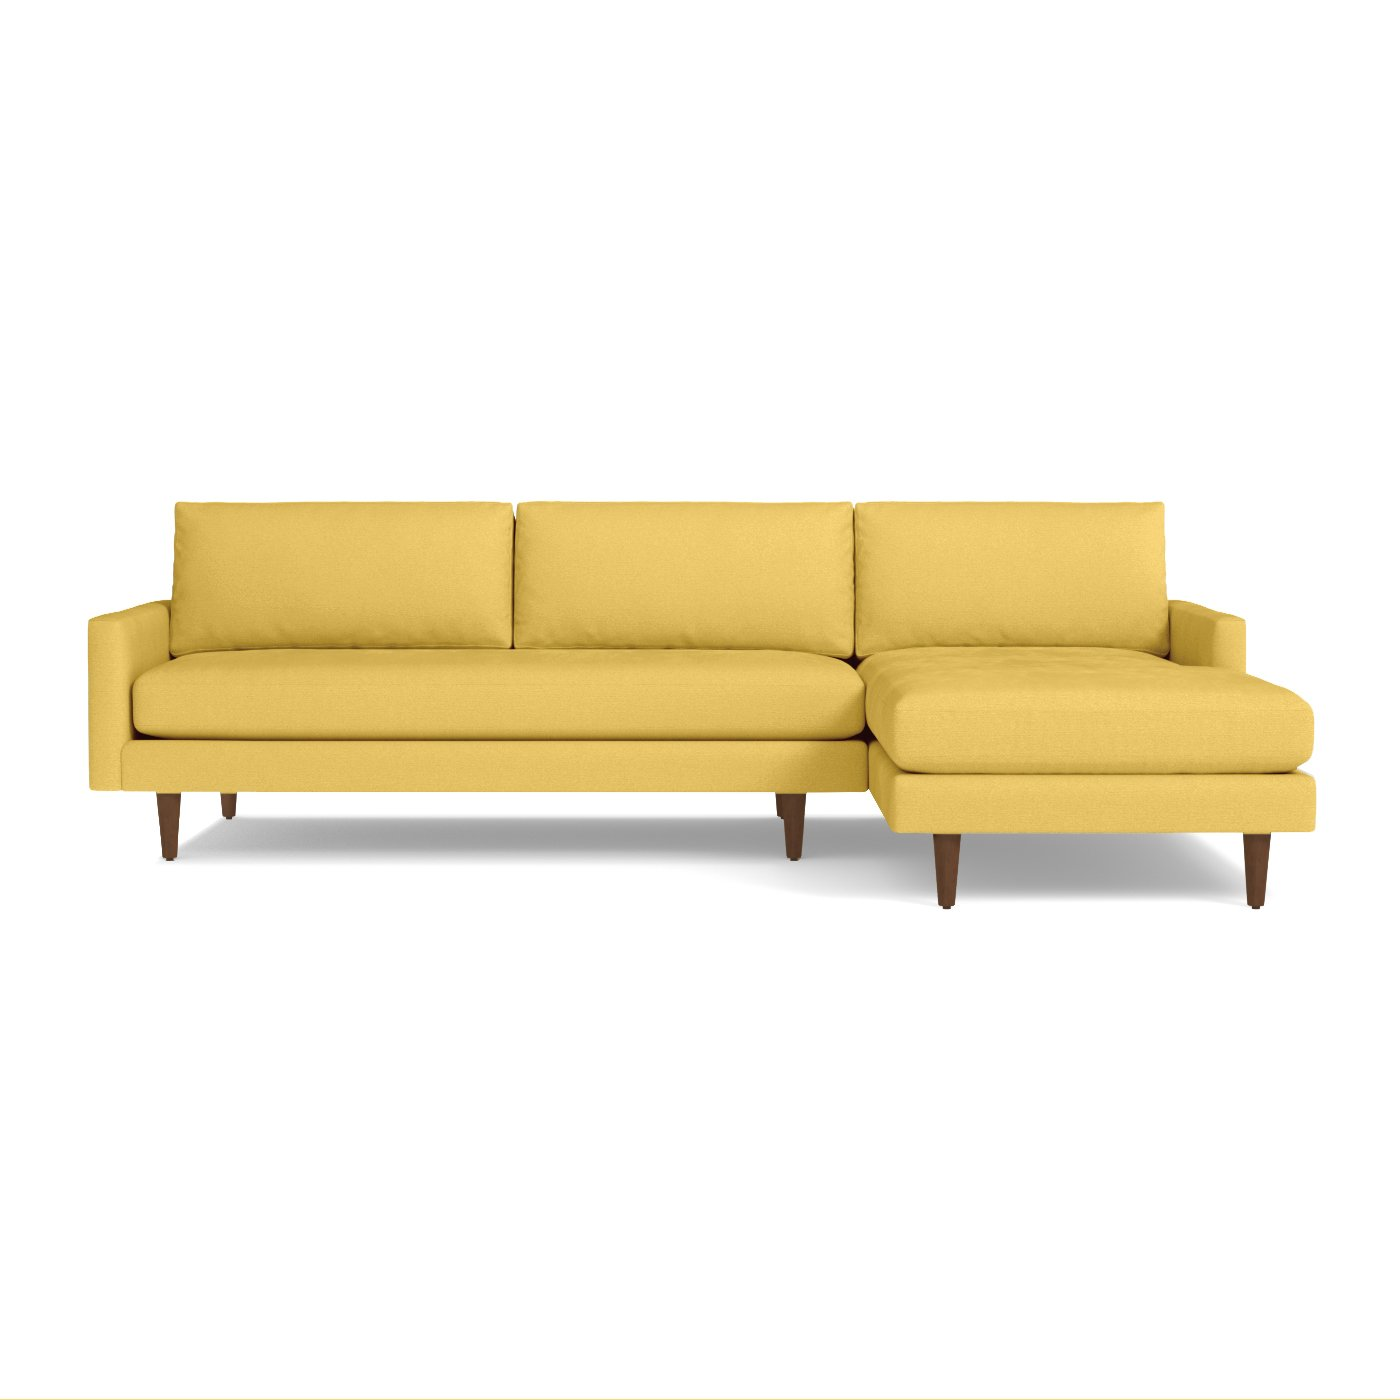 Sofa sectional furniture reclining sectional sofa in for Black microfiber sectional sofa with chaise